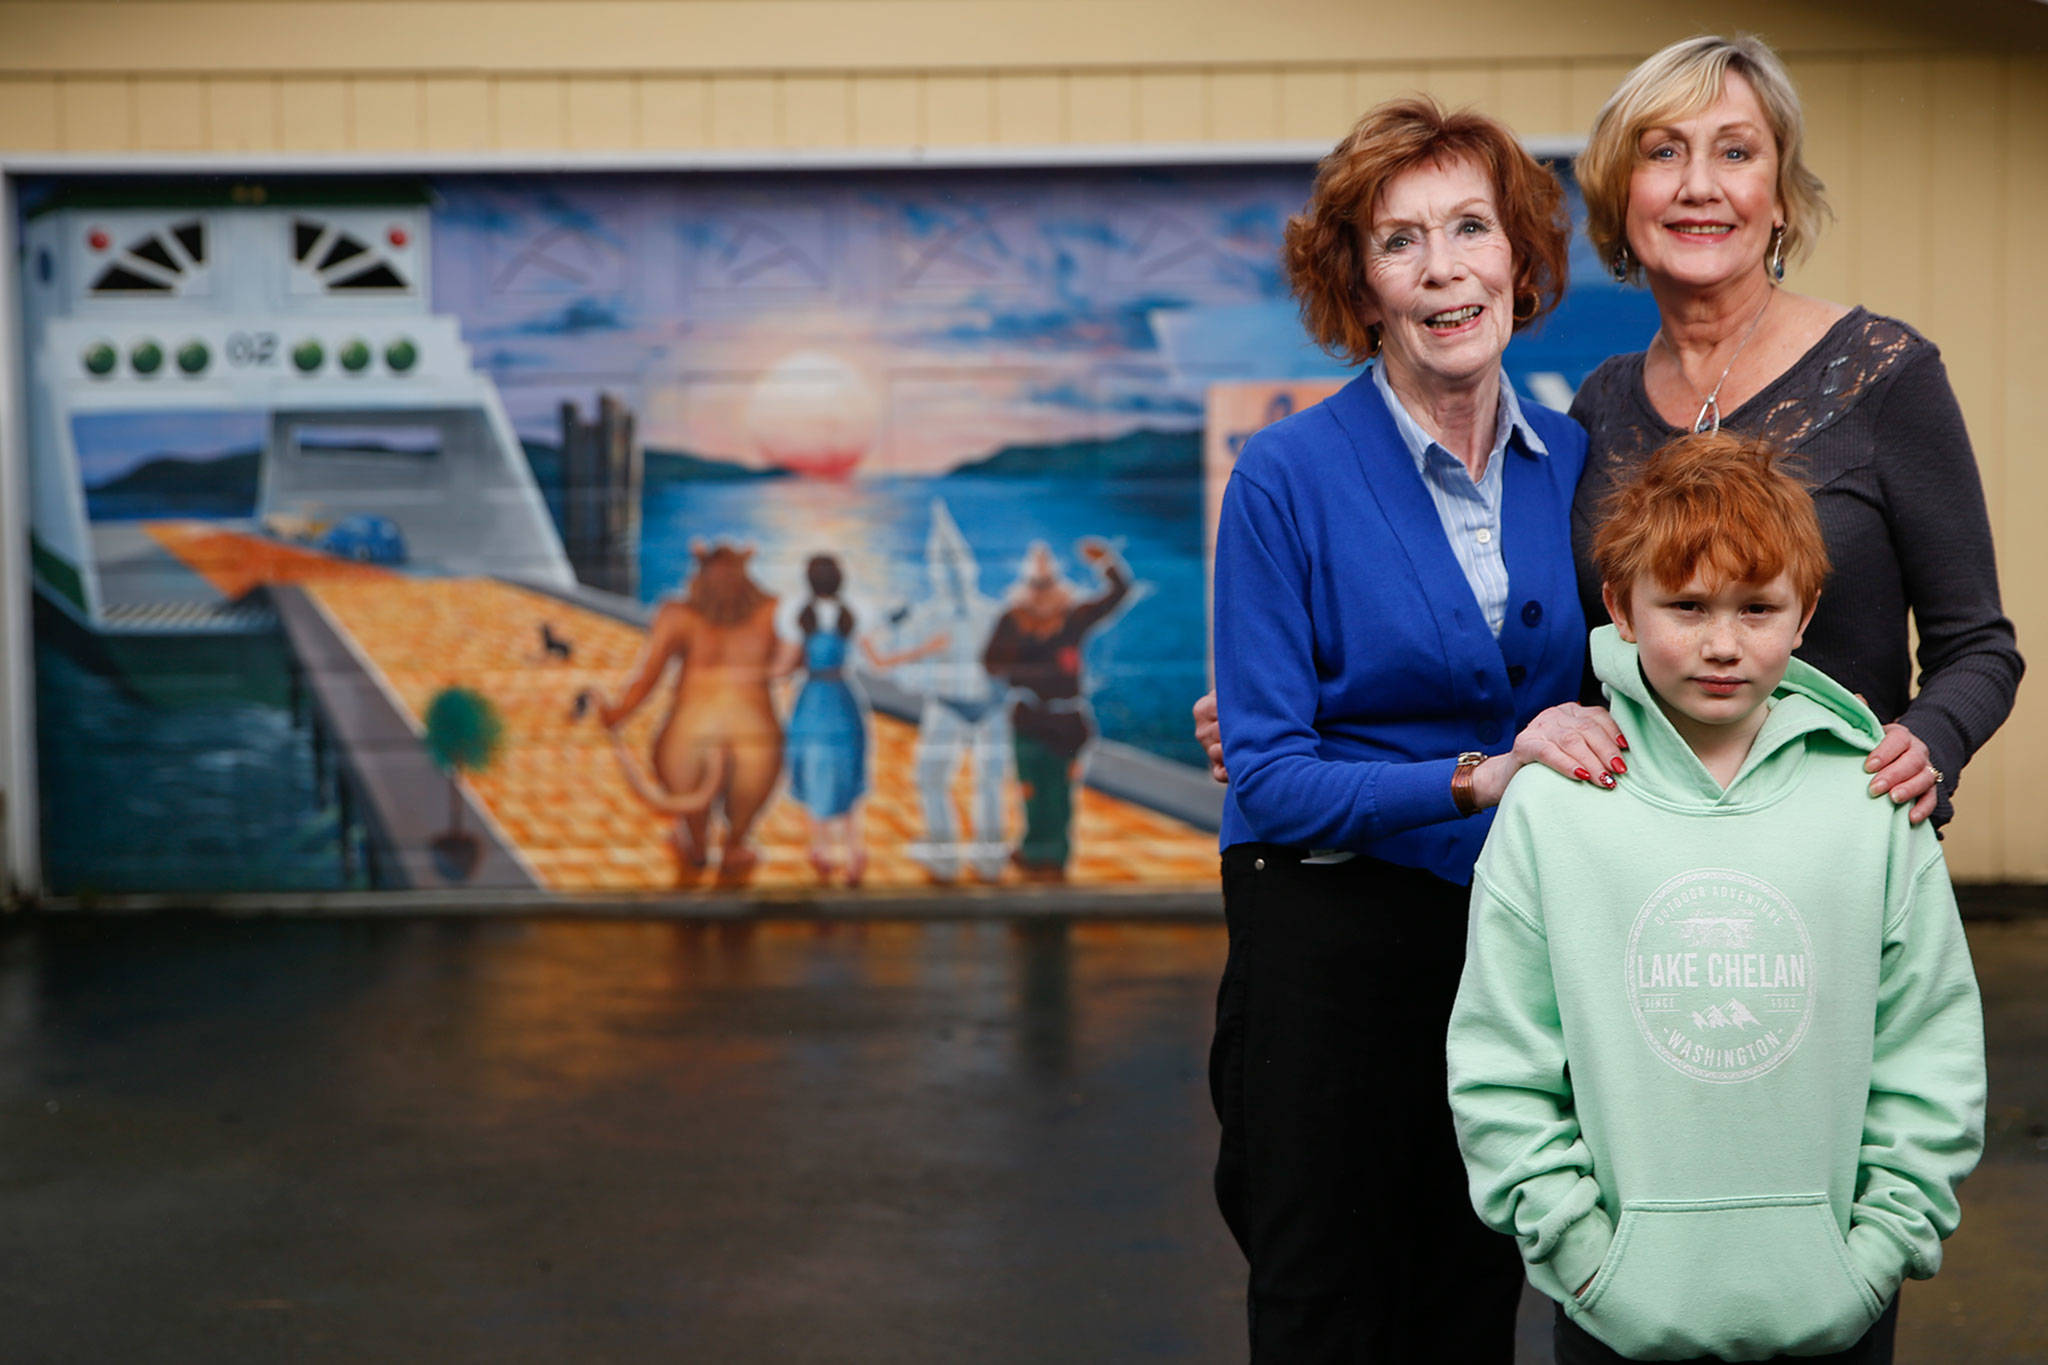 Sharon Pittman, her daughter Diana Jessen and her grandson Xander Pittman, 8, stand in front of a mural on the garage door of her home. It was painted in 2009 by Monroe muralist David Hose in 2009, who has done numerous murals around Snohomish County. (Kevin Clark / The Herald)